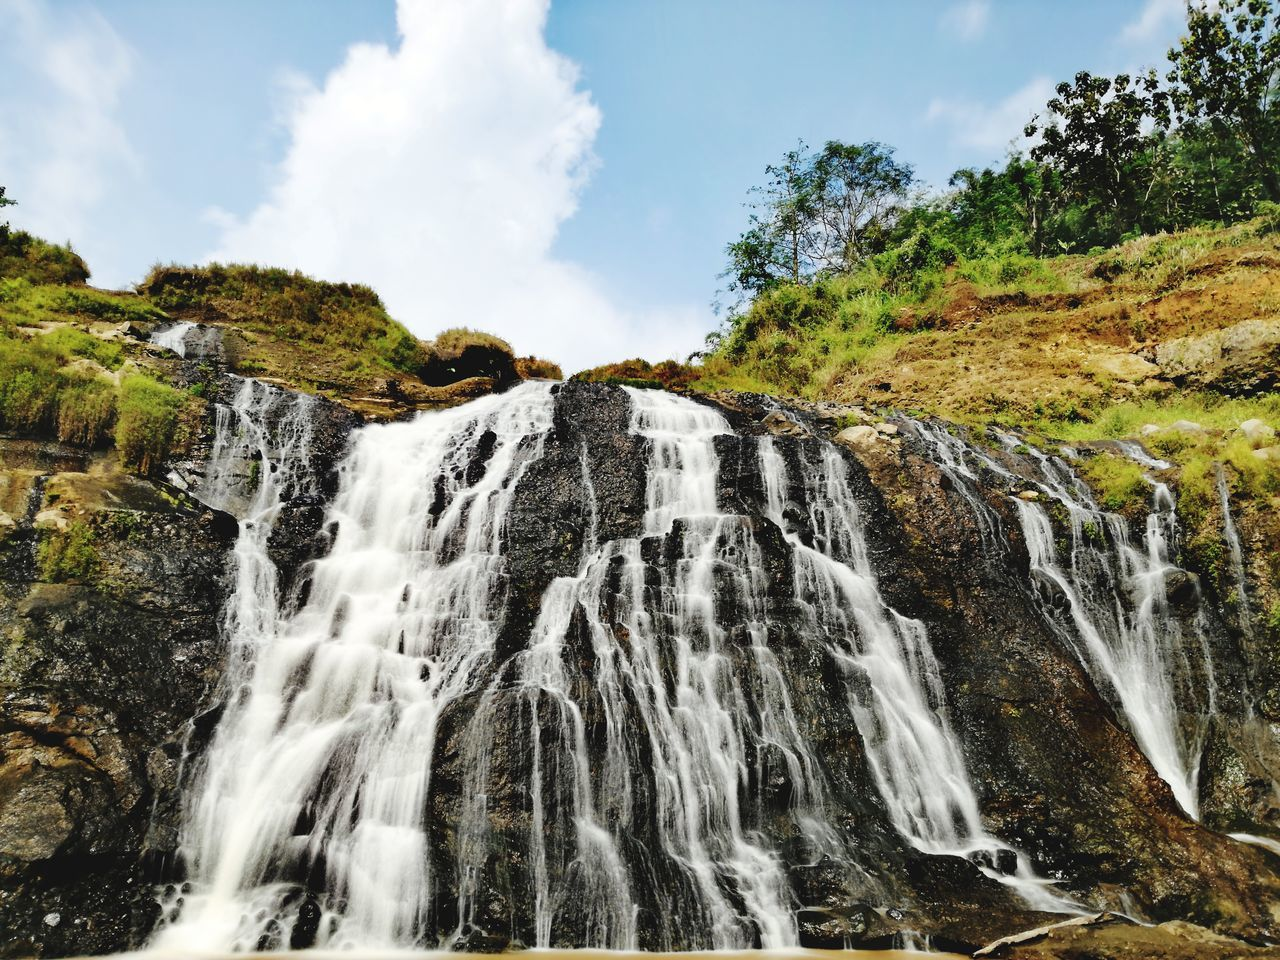 kedung bobot waterfall